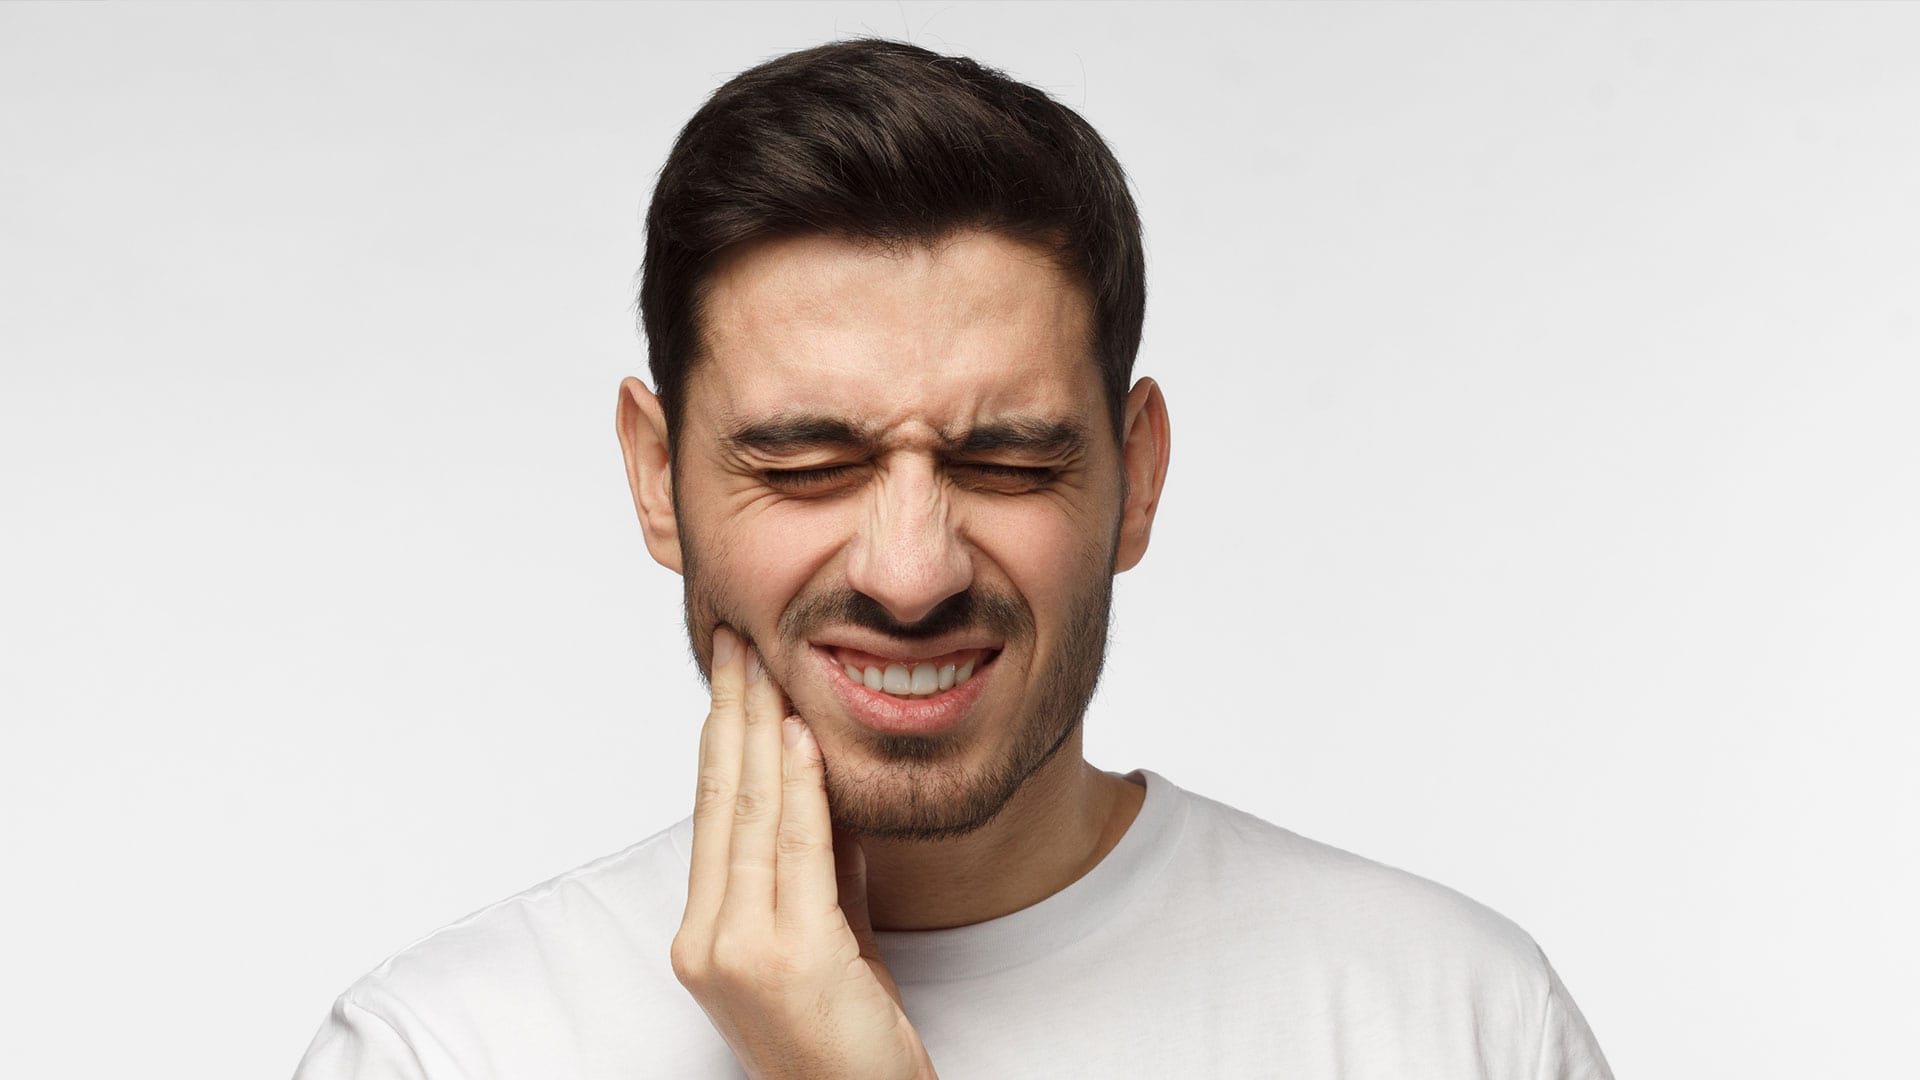 man suffering from TMJ symptoms presses his hand against his jaw line